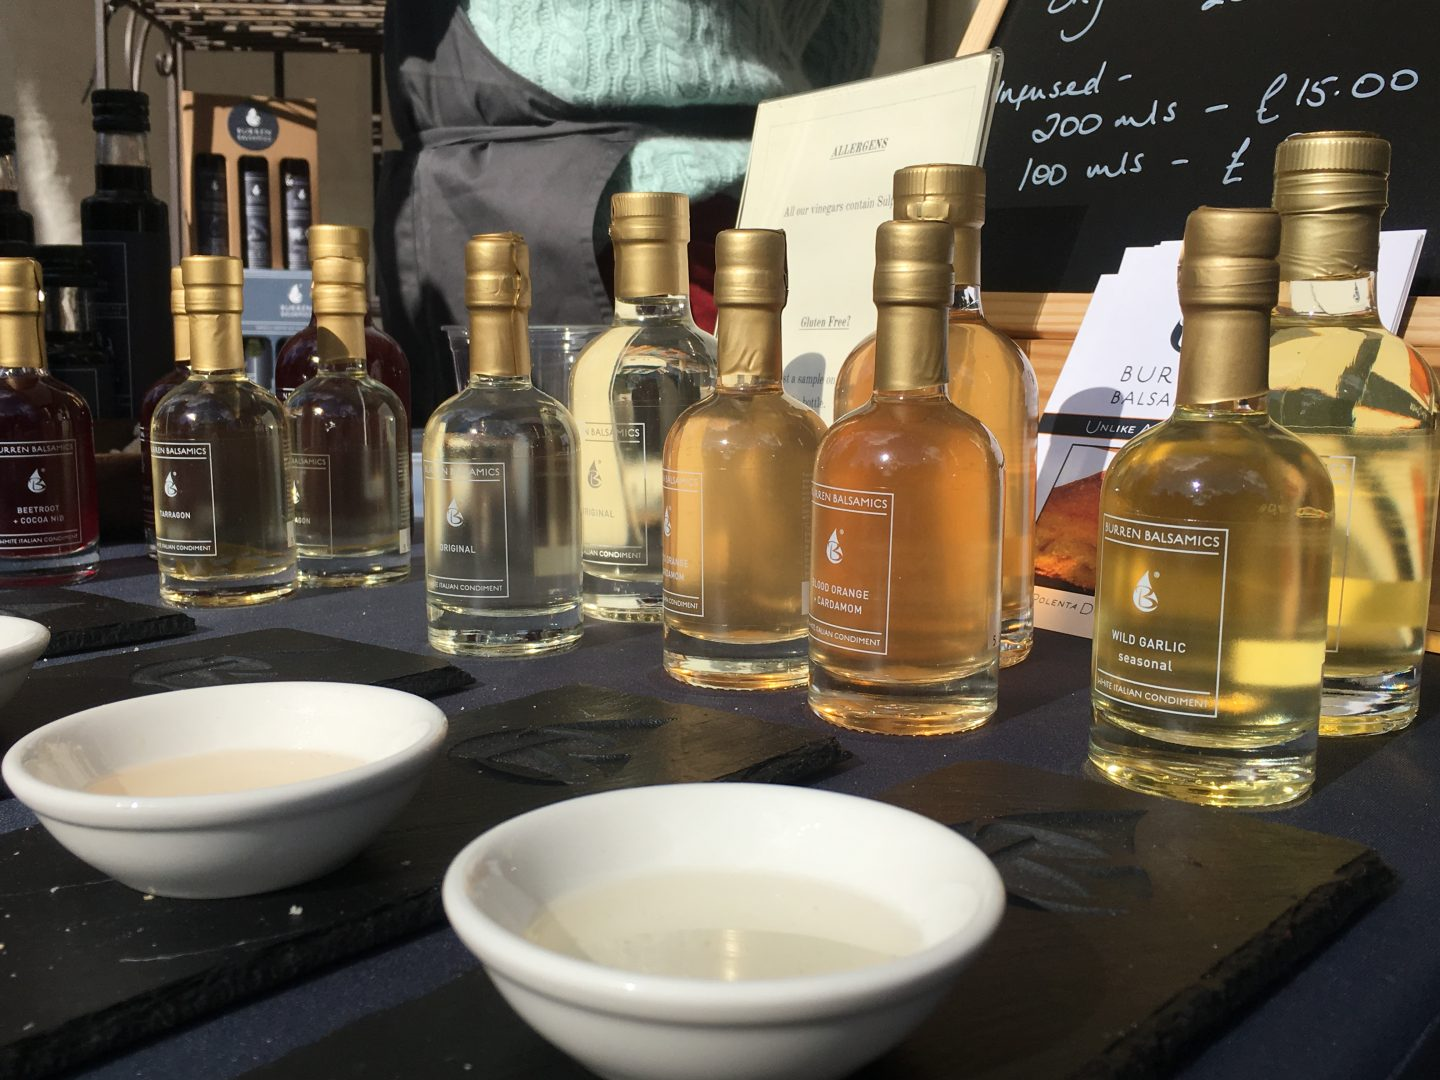 Oils on display at BelFeast Food and Drink Festival